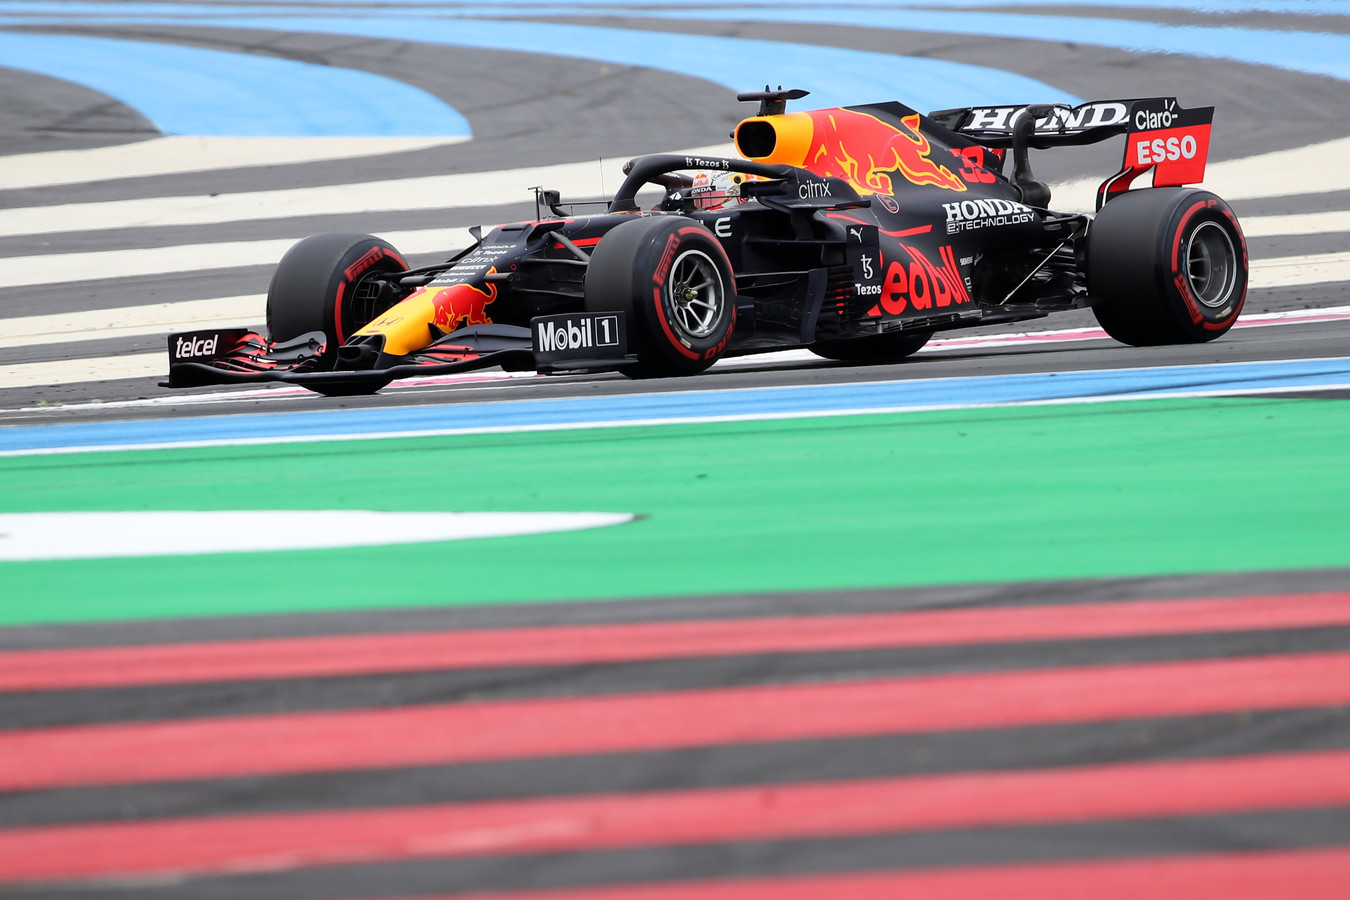 Formula One F1 - French Grand Prix - Circuit Paul Ricard, Le Castellet, France - June 19, 2021 Red Bull's Max Verstappen in action during practice REUTERS/Yves Herman